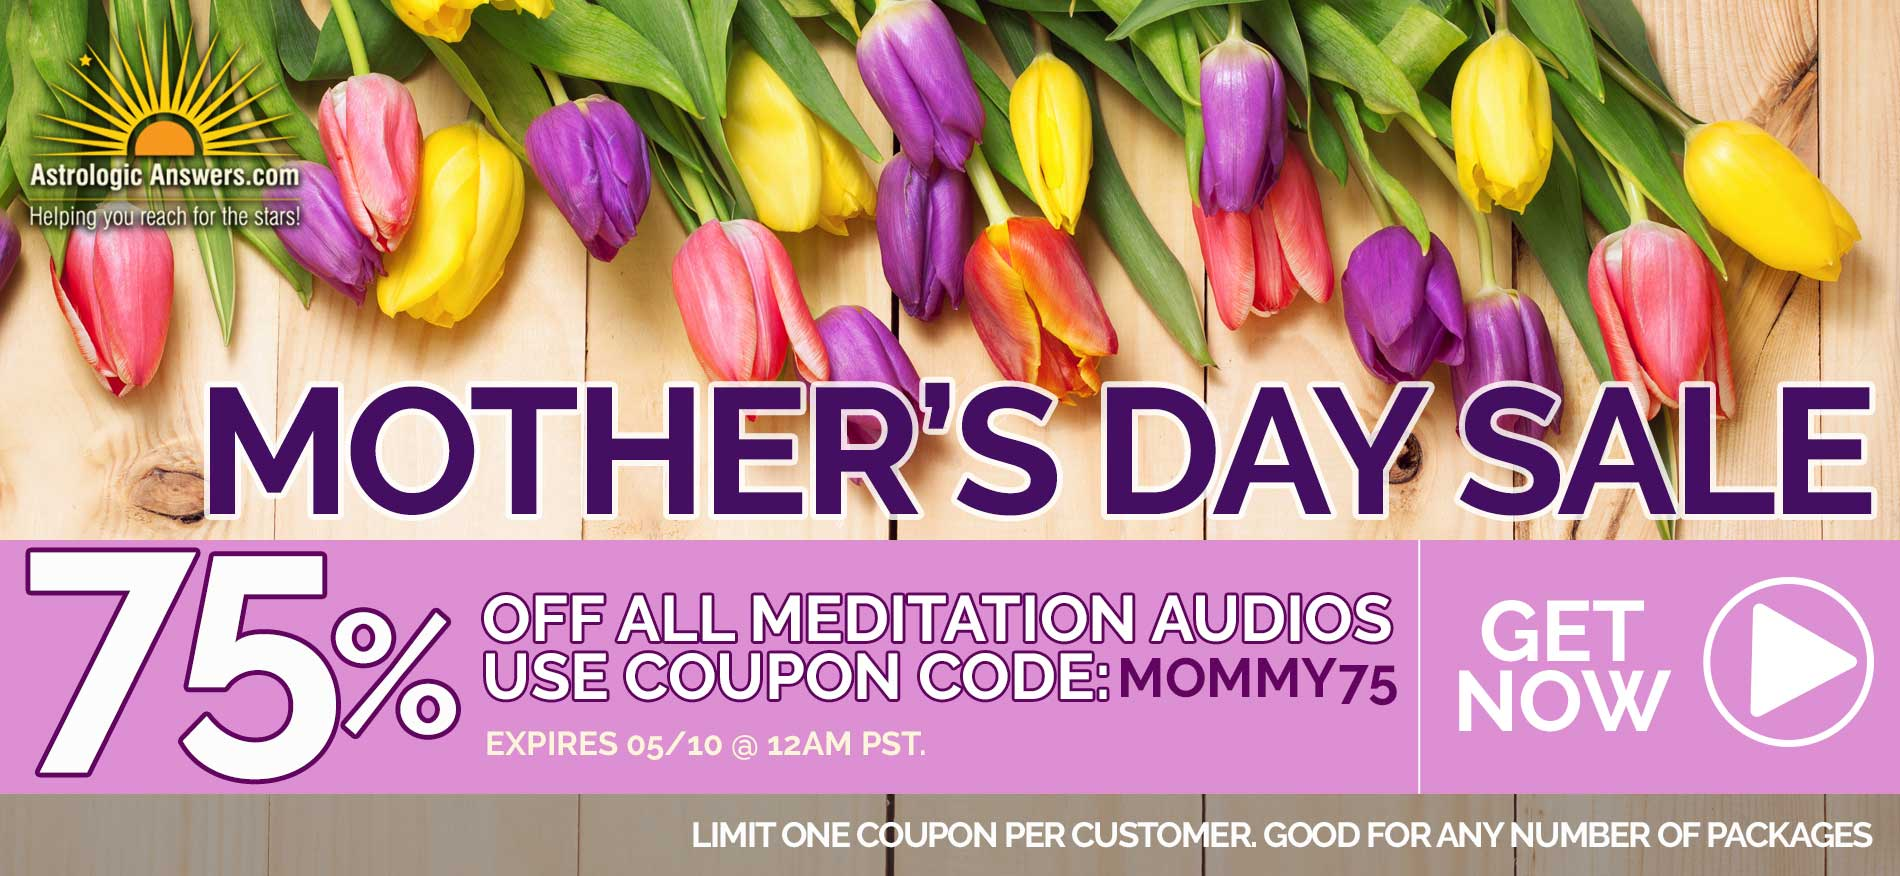 75% off Mother's Day Sale Image